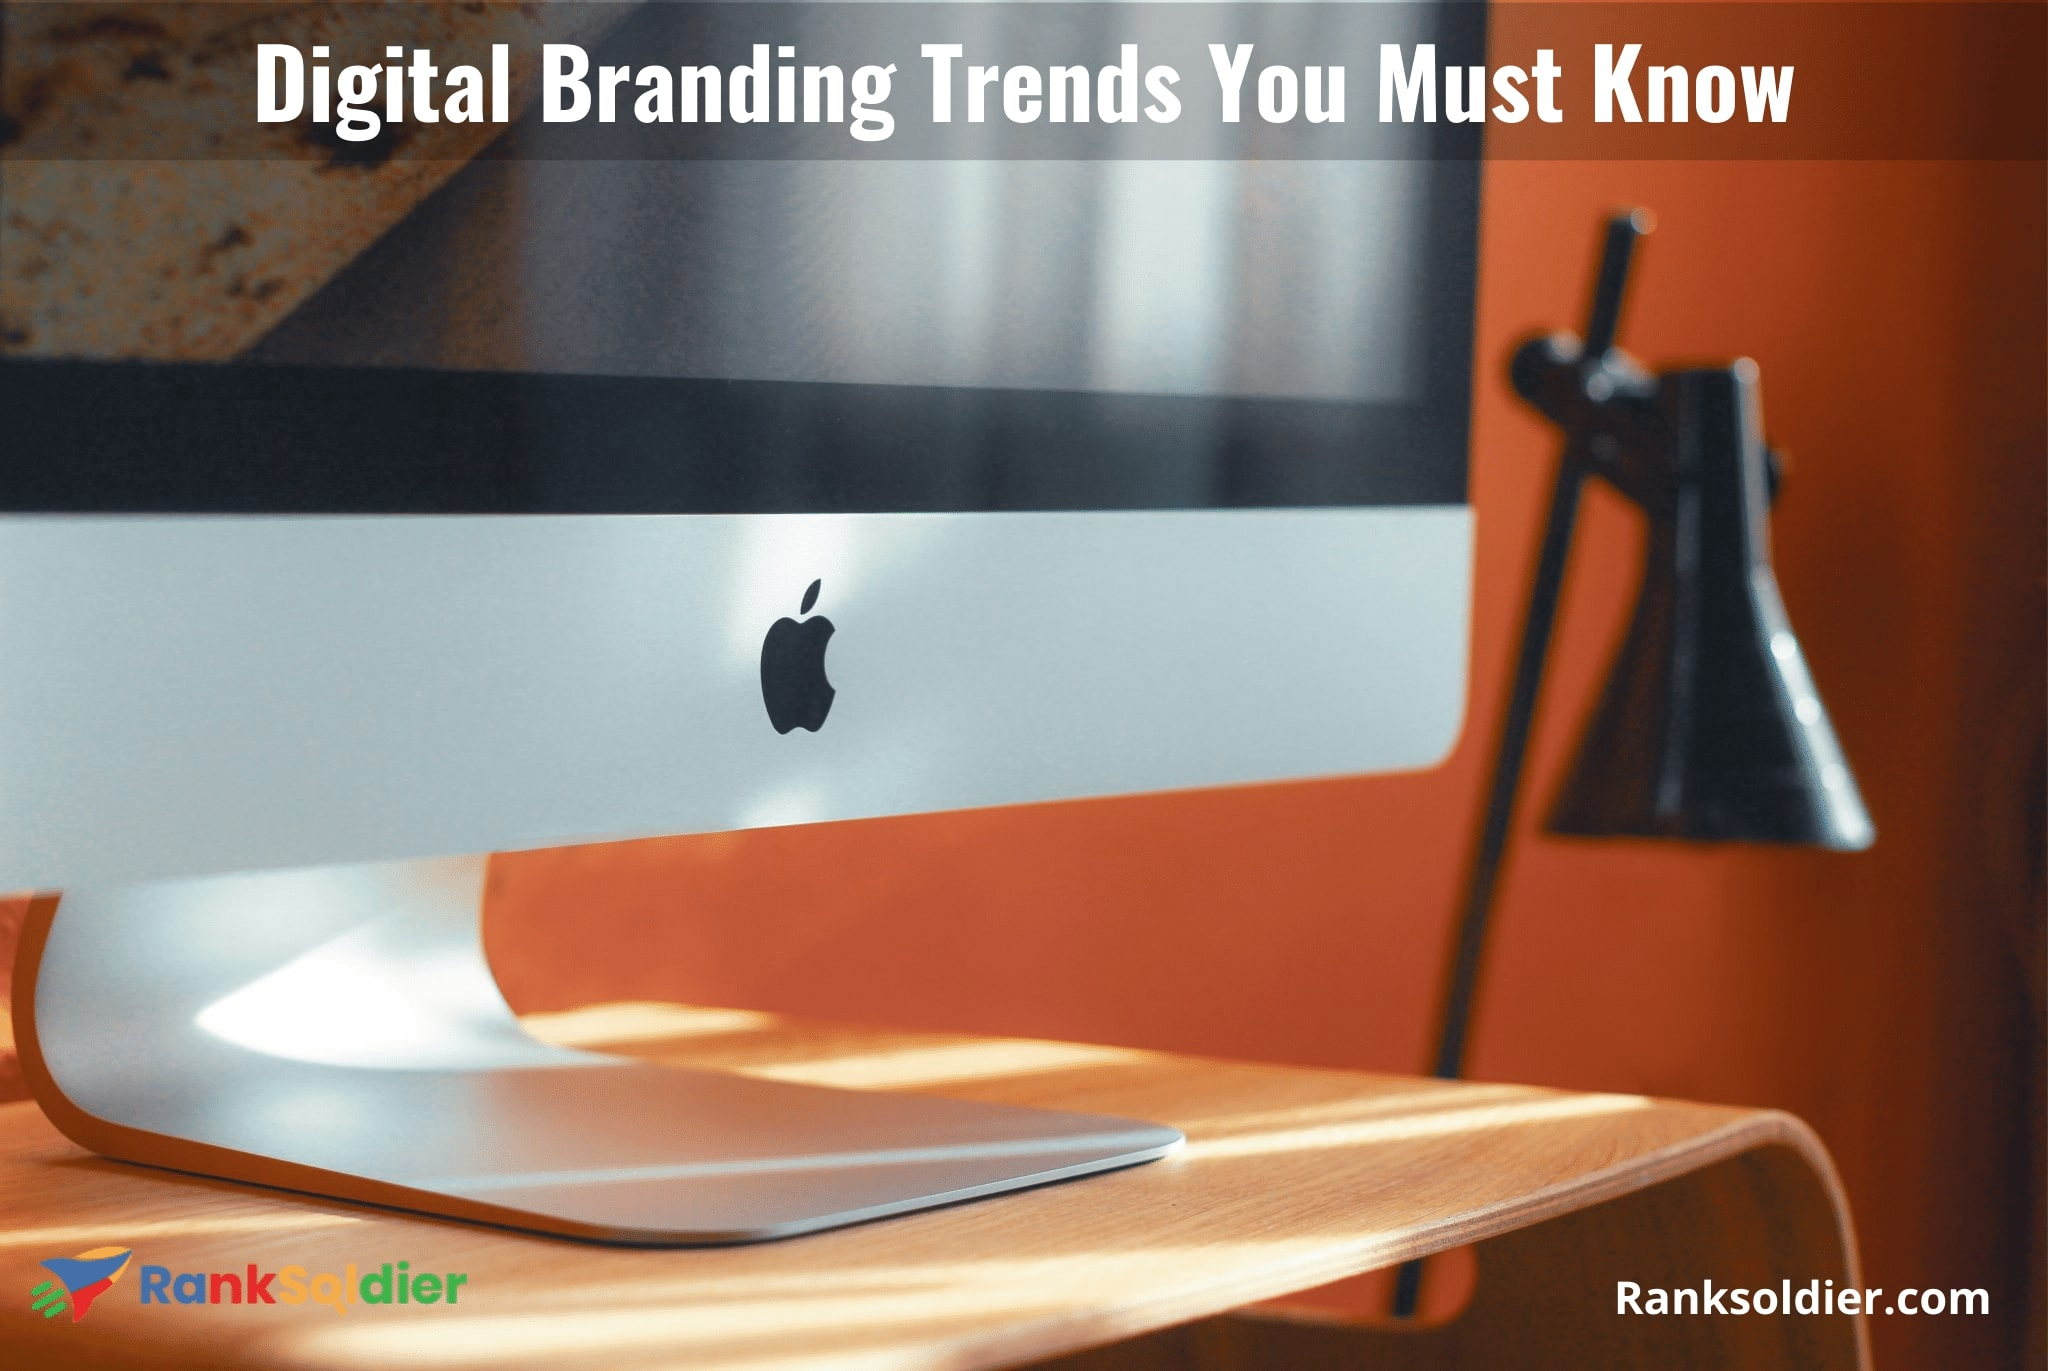 Digital Branding Trends You Must Know